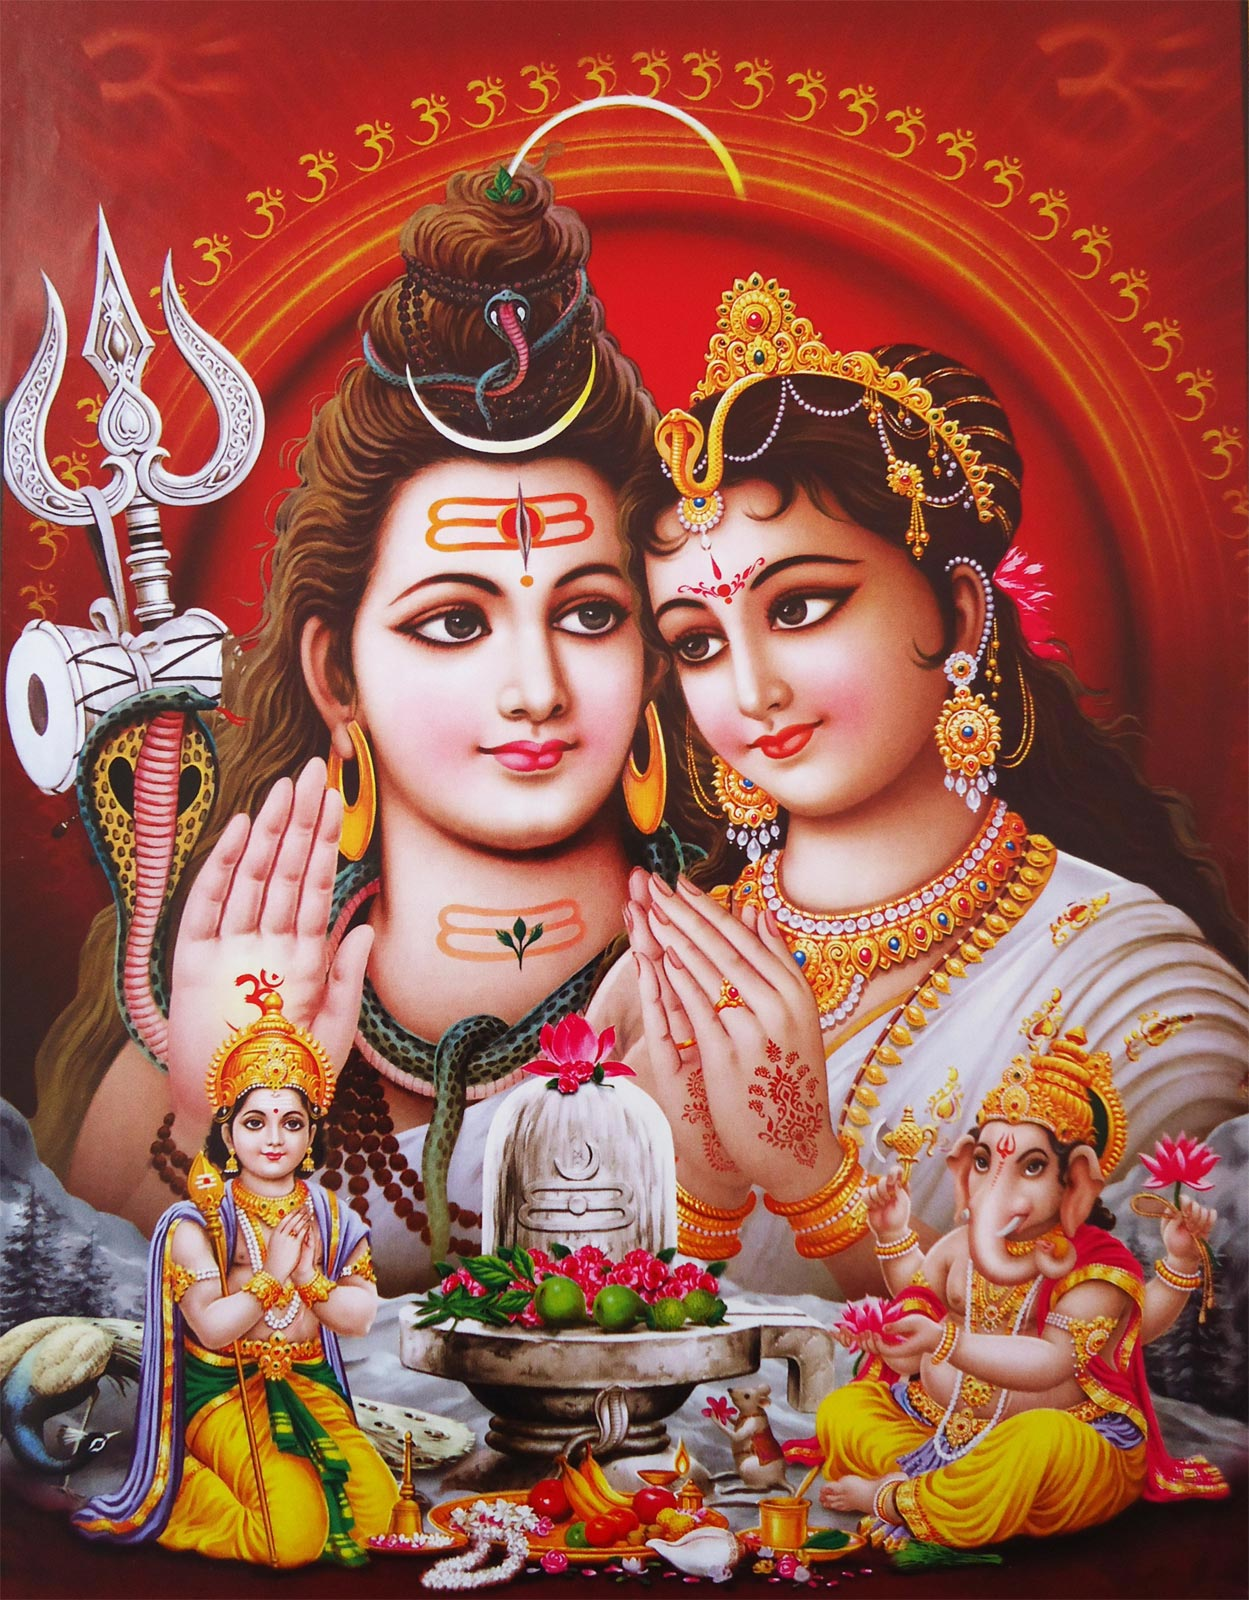 Siva God Wallpapers Lord Shiva Songs Download 1249x1600 Wallpaper Teahub Io